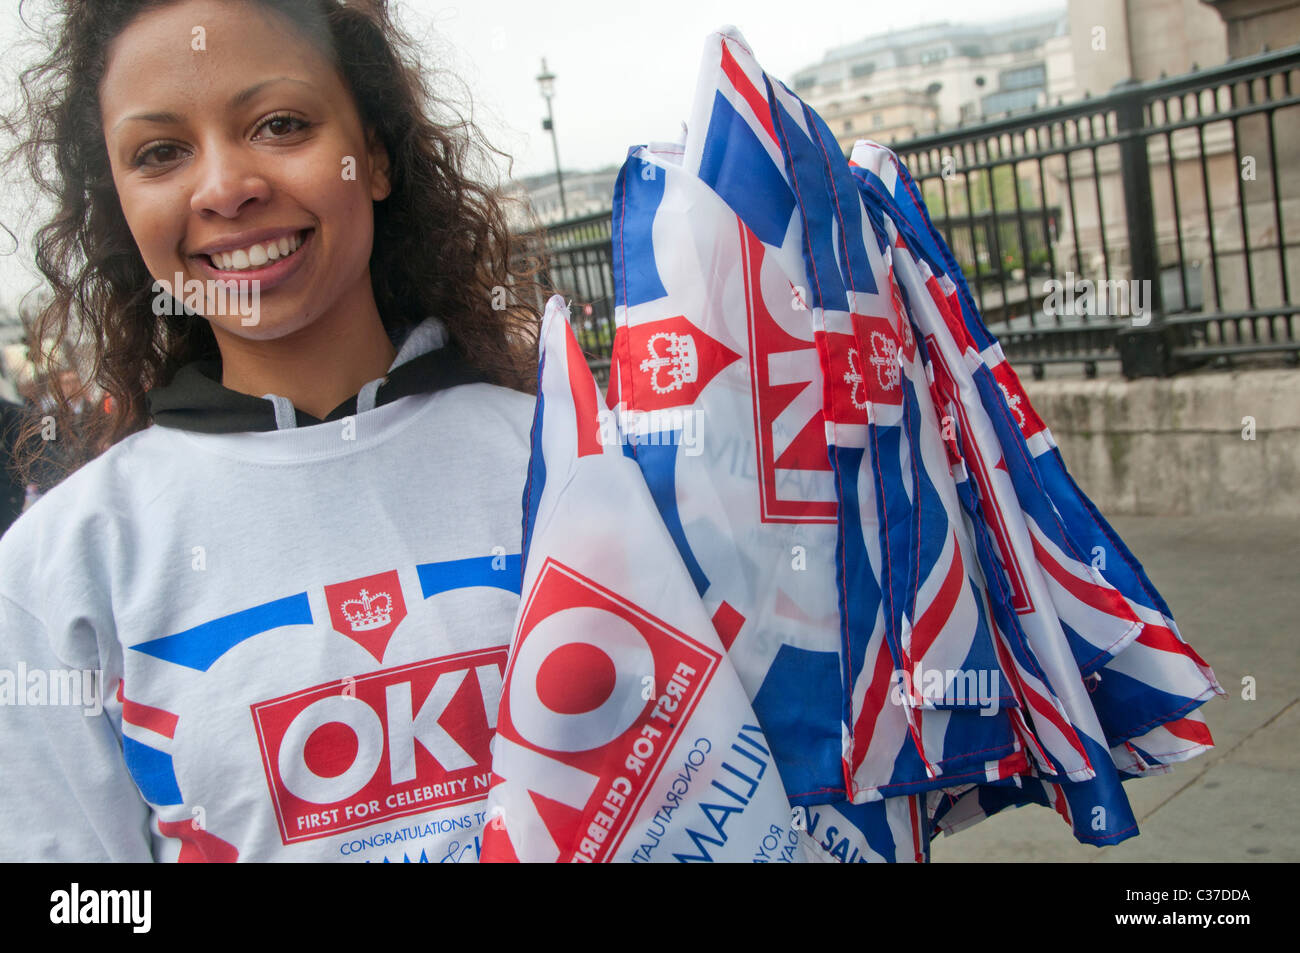 April 29th 2011 Royal Wedding. Trafalgar Square. Woman handing out Union Jacks, given away by OK magazine. - Stock Image